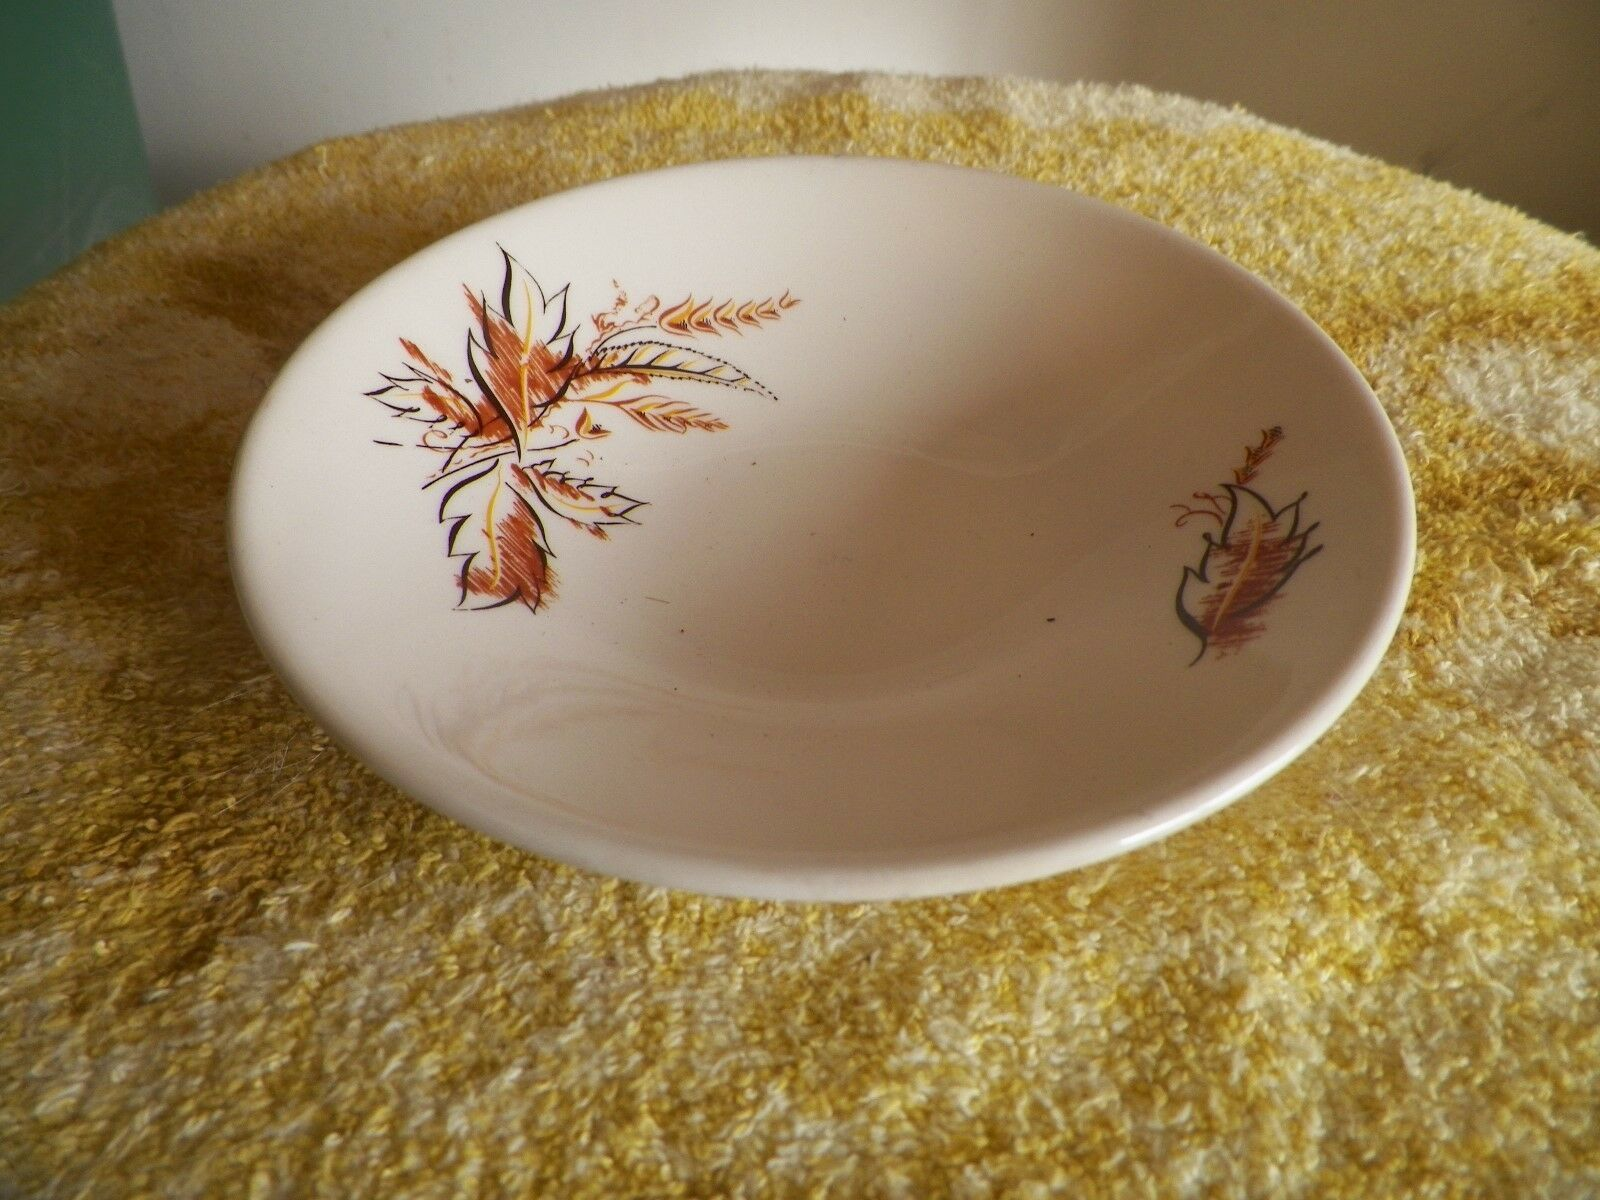 Knowles fruit bowl (KNO180) 7 available - $3.42